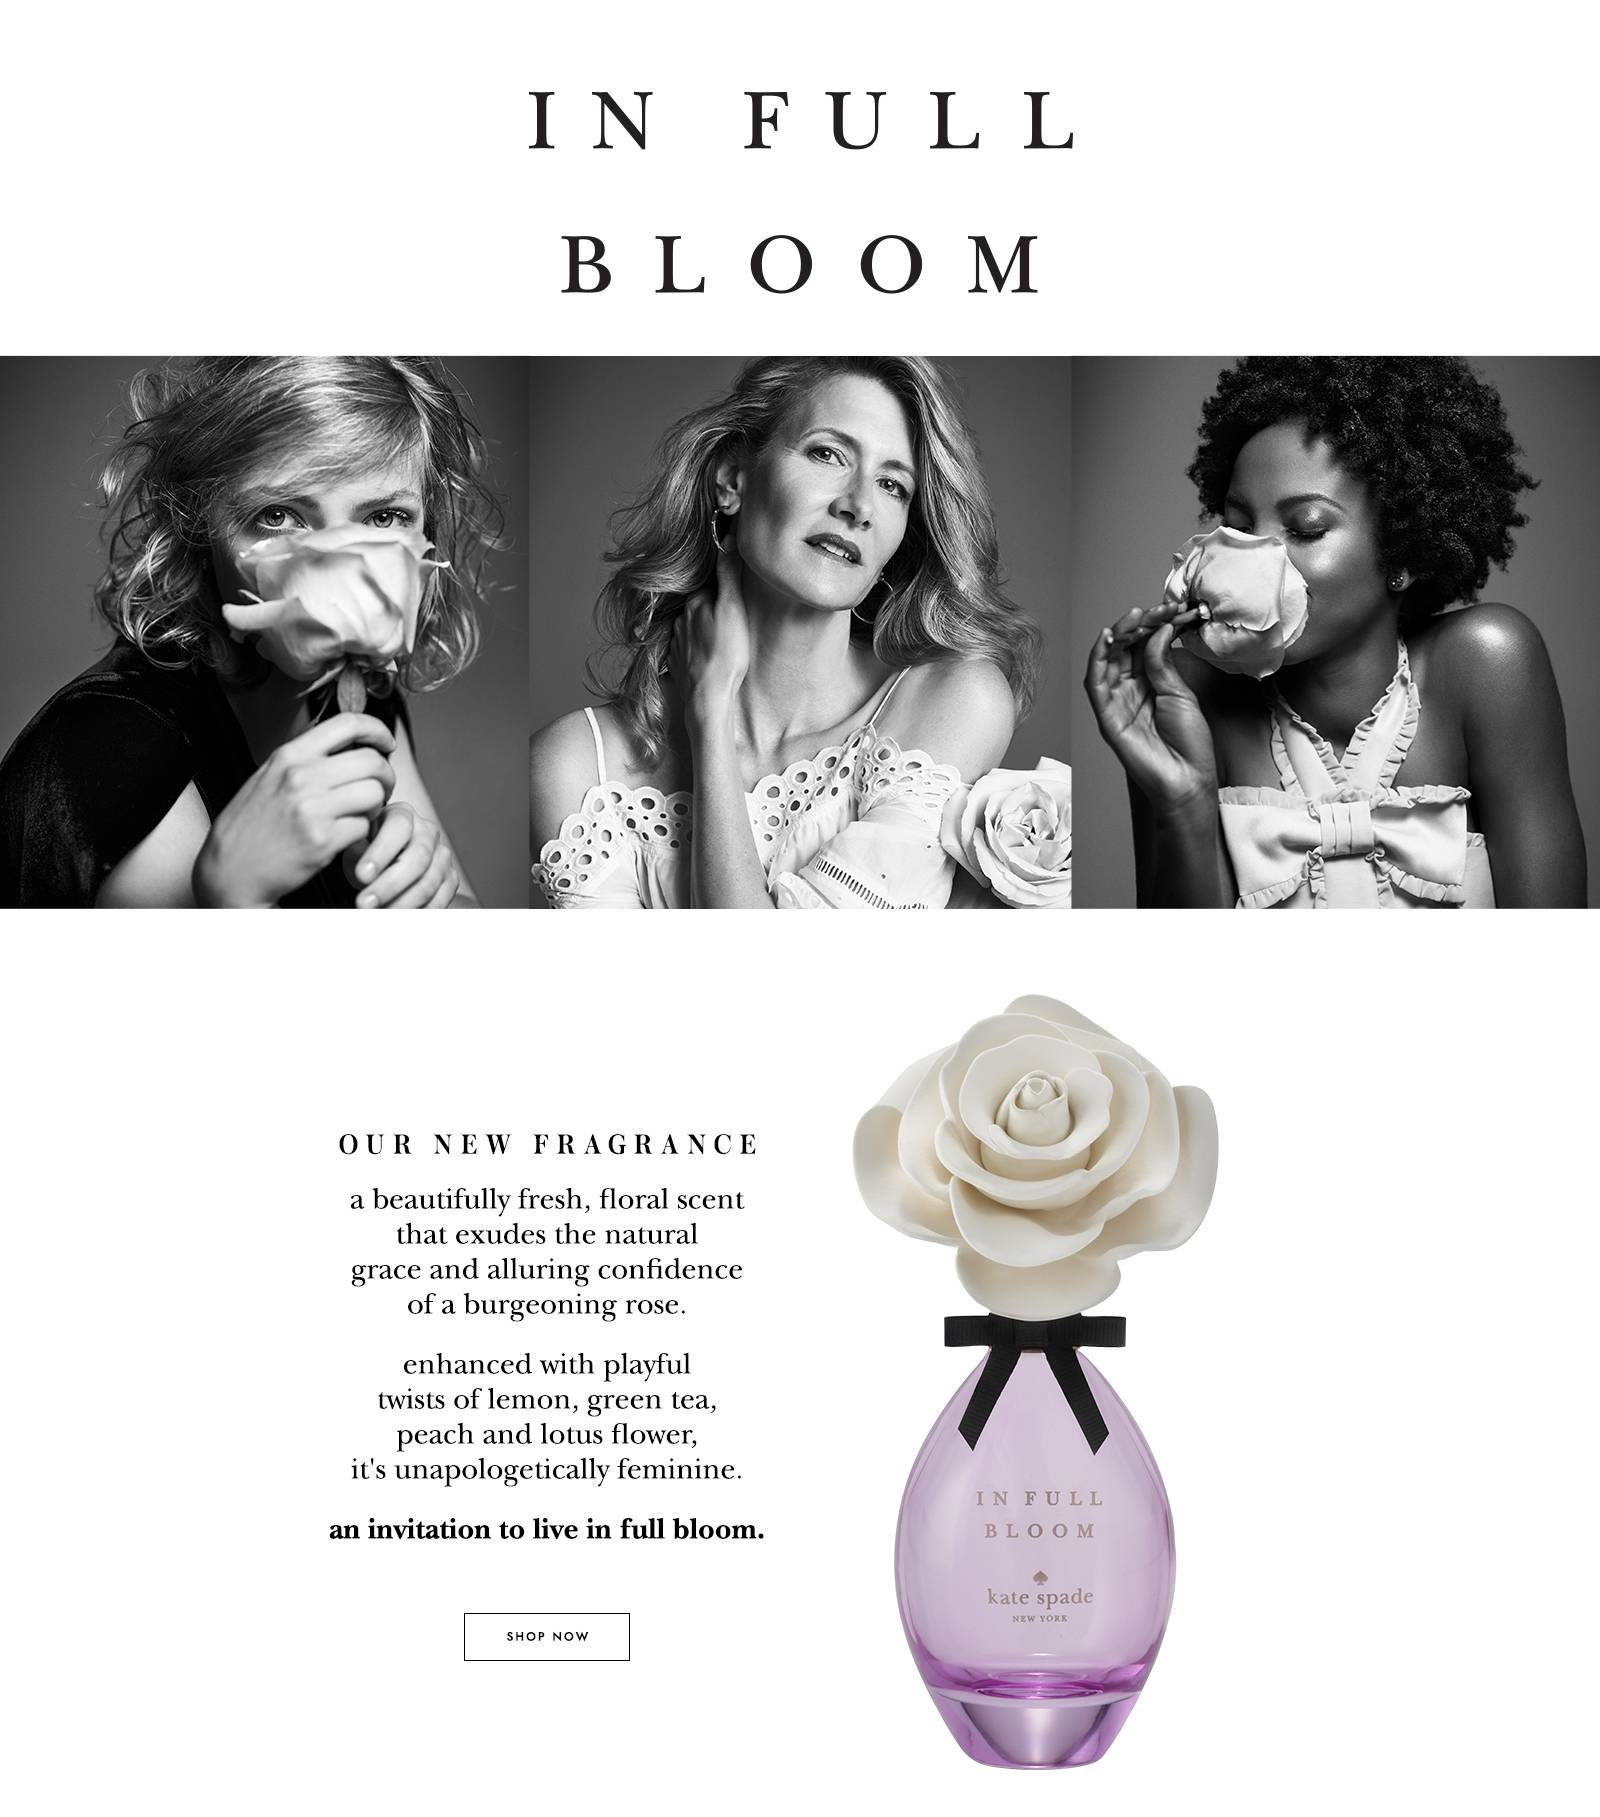 in full bloom. our new fragrance. a beautifully fresh, floral scent that exudes the natural grace and alluring confidence of a burgeoning rose. enhanced with playful twists of lemon, green tea, peach and lotus flower, it's unapologetically feminine. an invitation to live in full bloom. shop now.